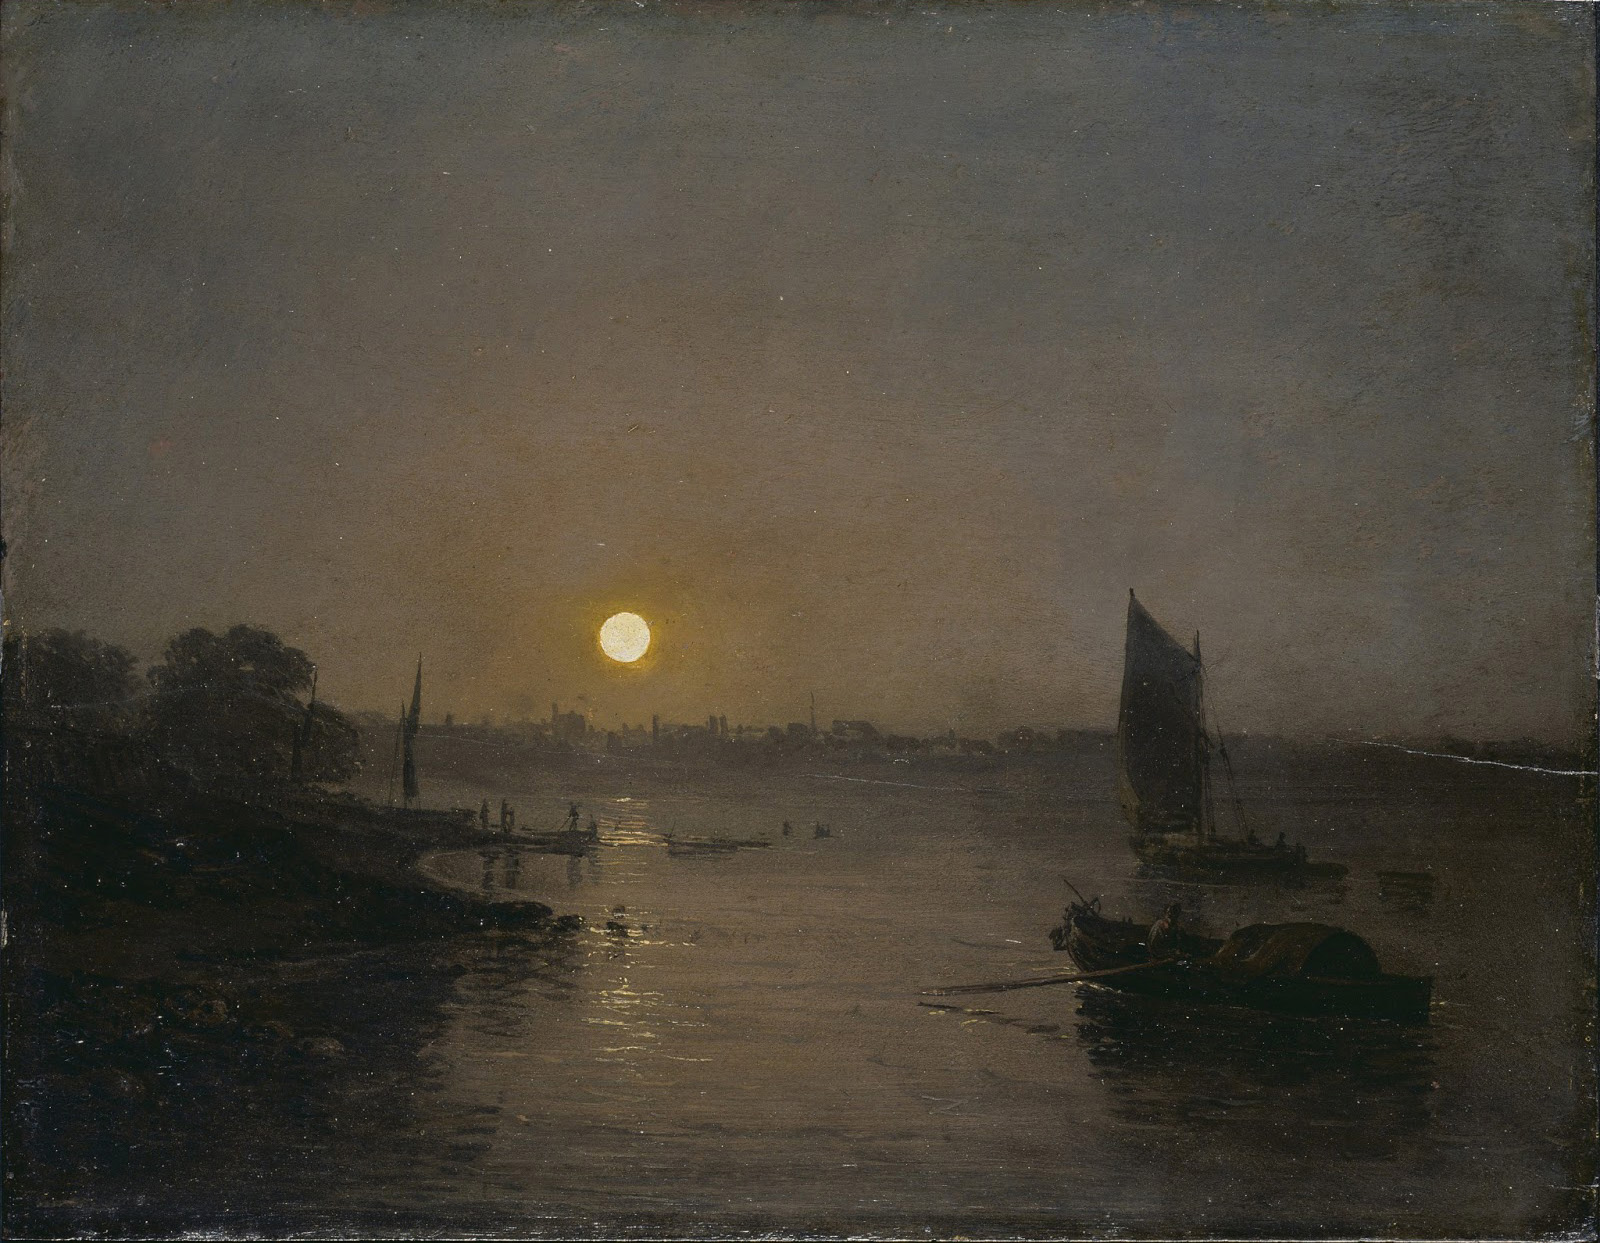 william turner, moonlight, a study at millbanks, insight, coaching, art-therapie, business coaching, career coaching, beauté